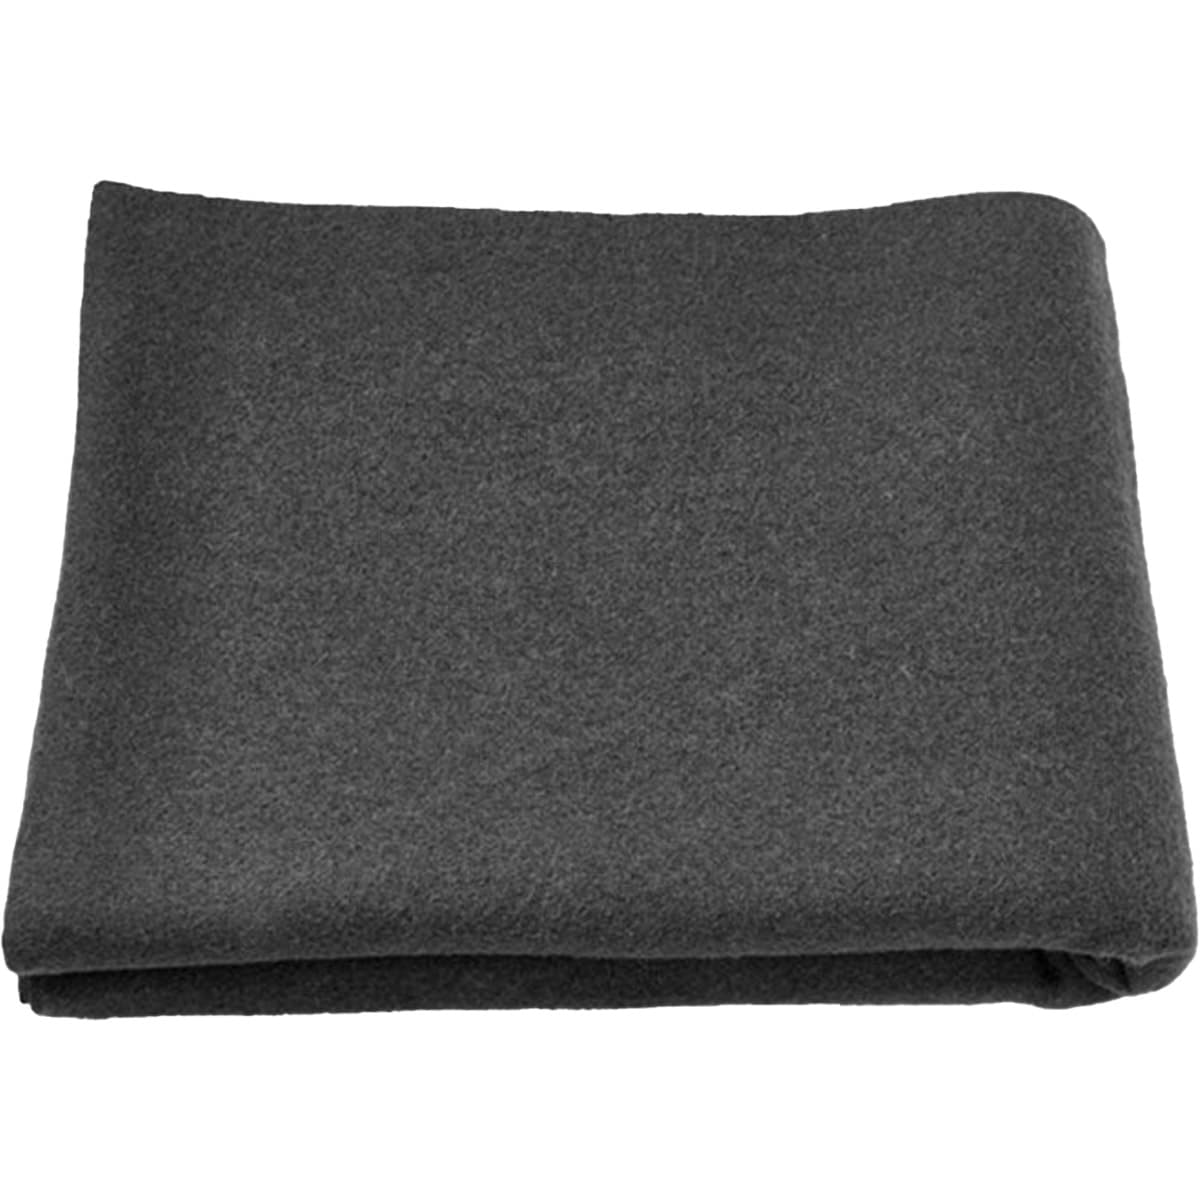 Personal Protection Wool Fire Blanket - Black